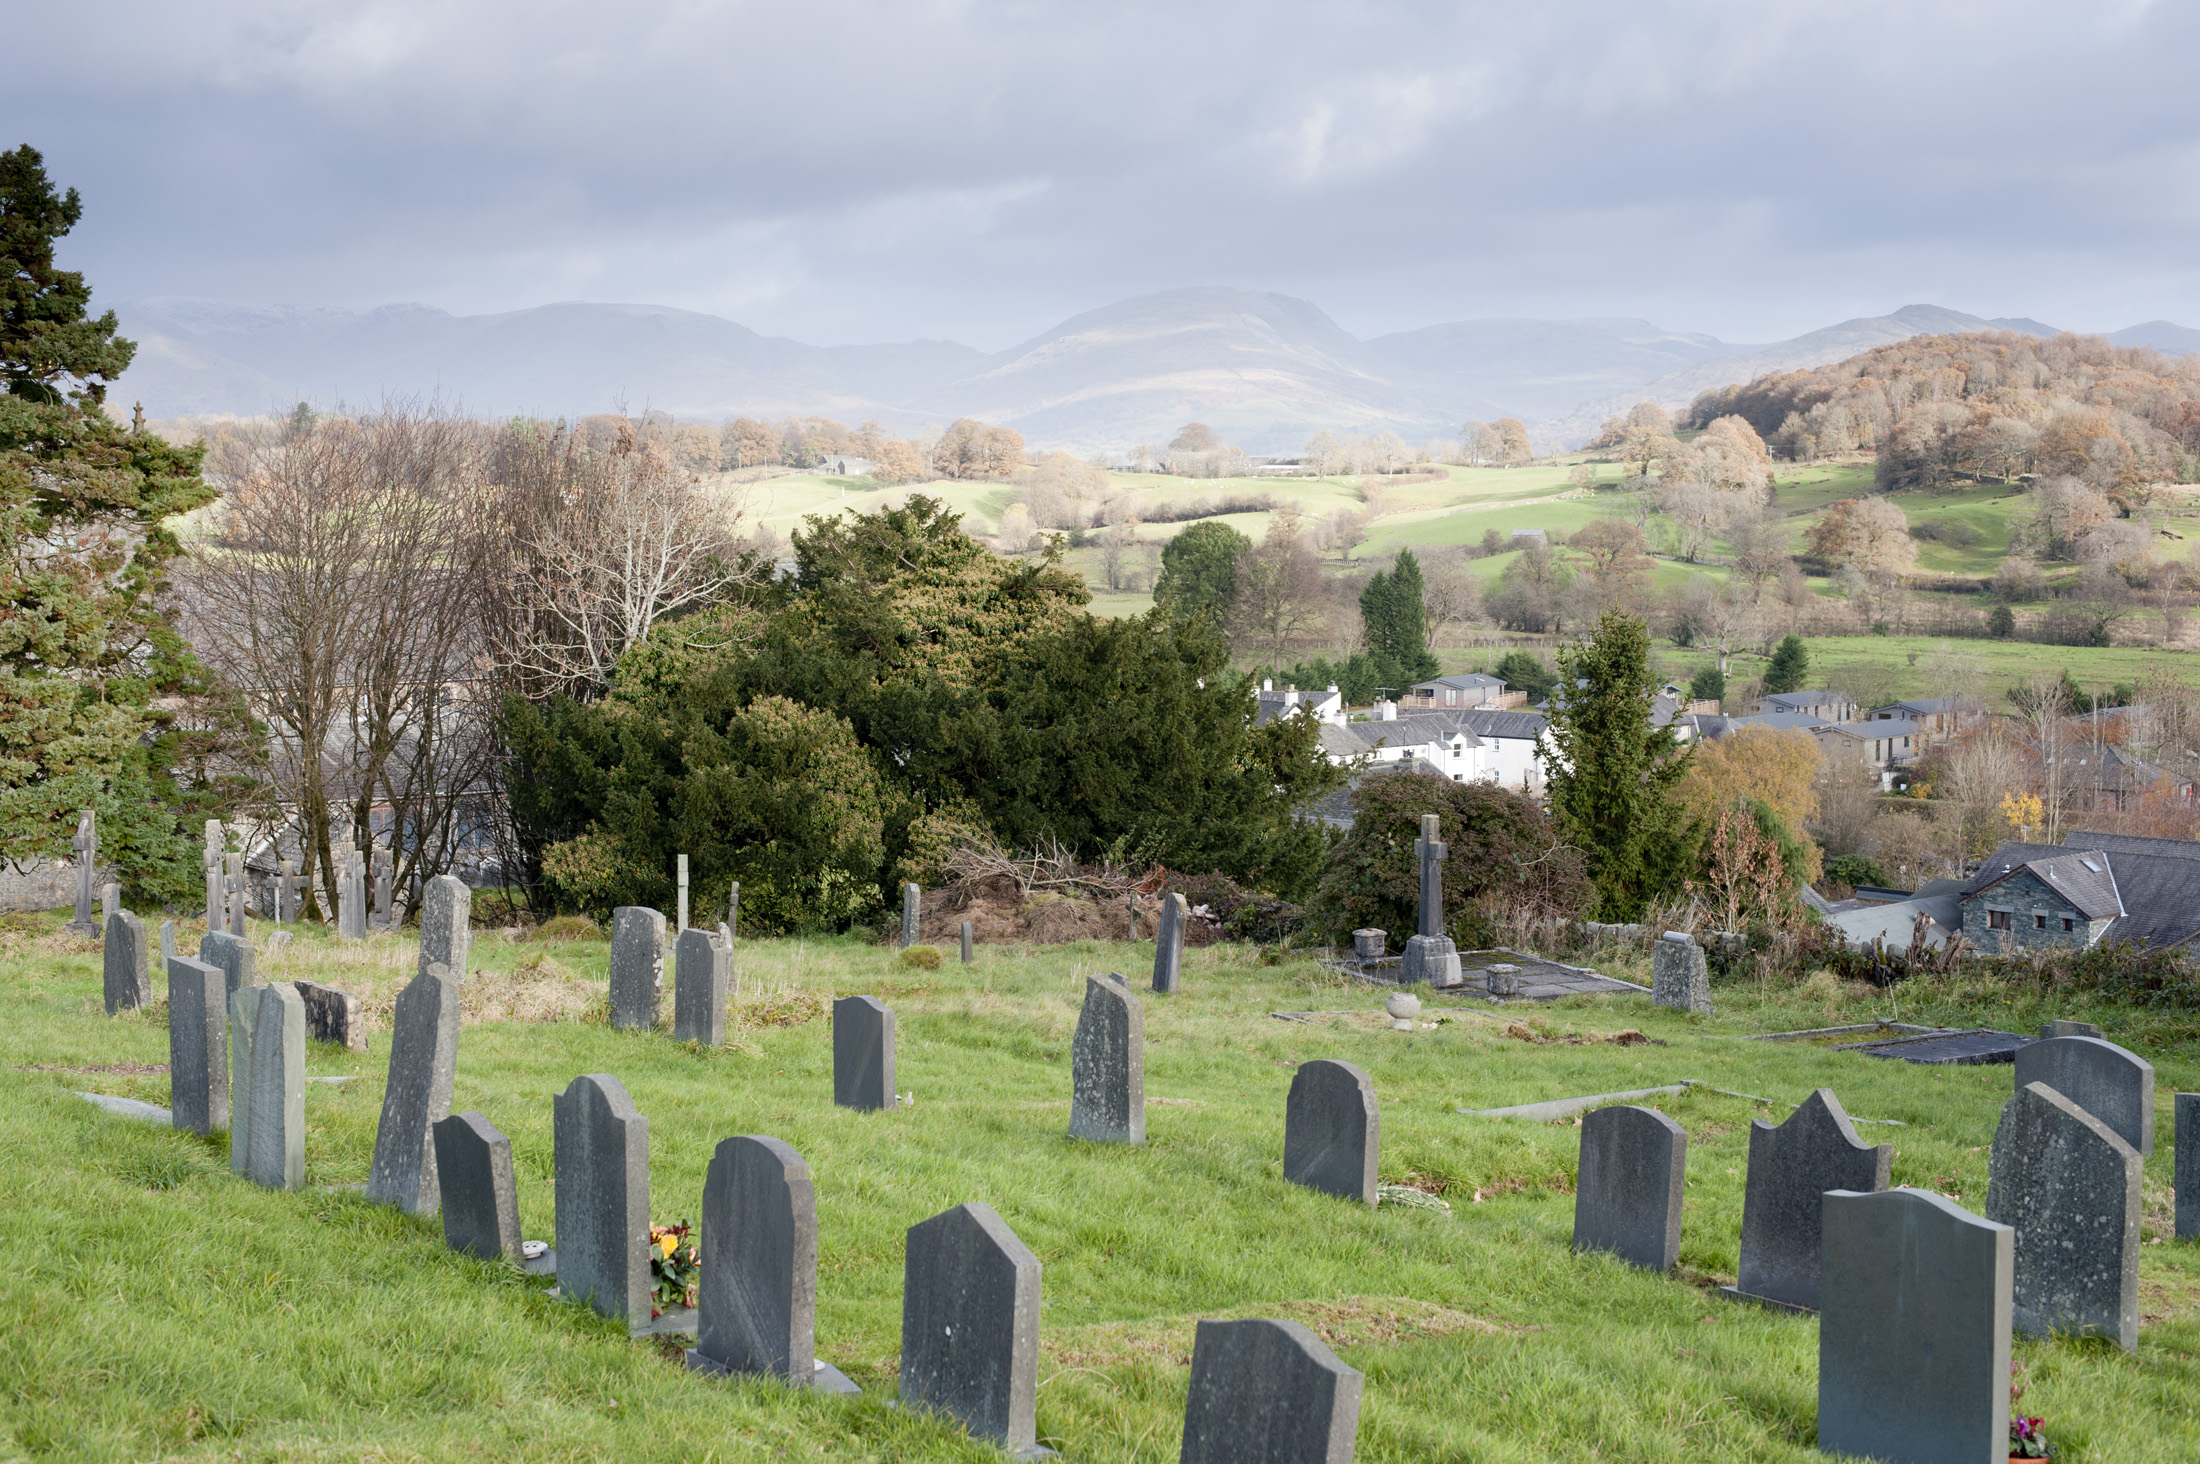 Gravestones in the churchyard at Hawkshead in the English Lake District with a view to beautiful lush green countryside and hills beyond